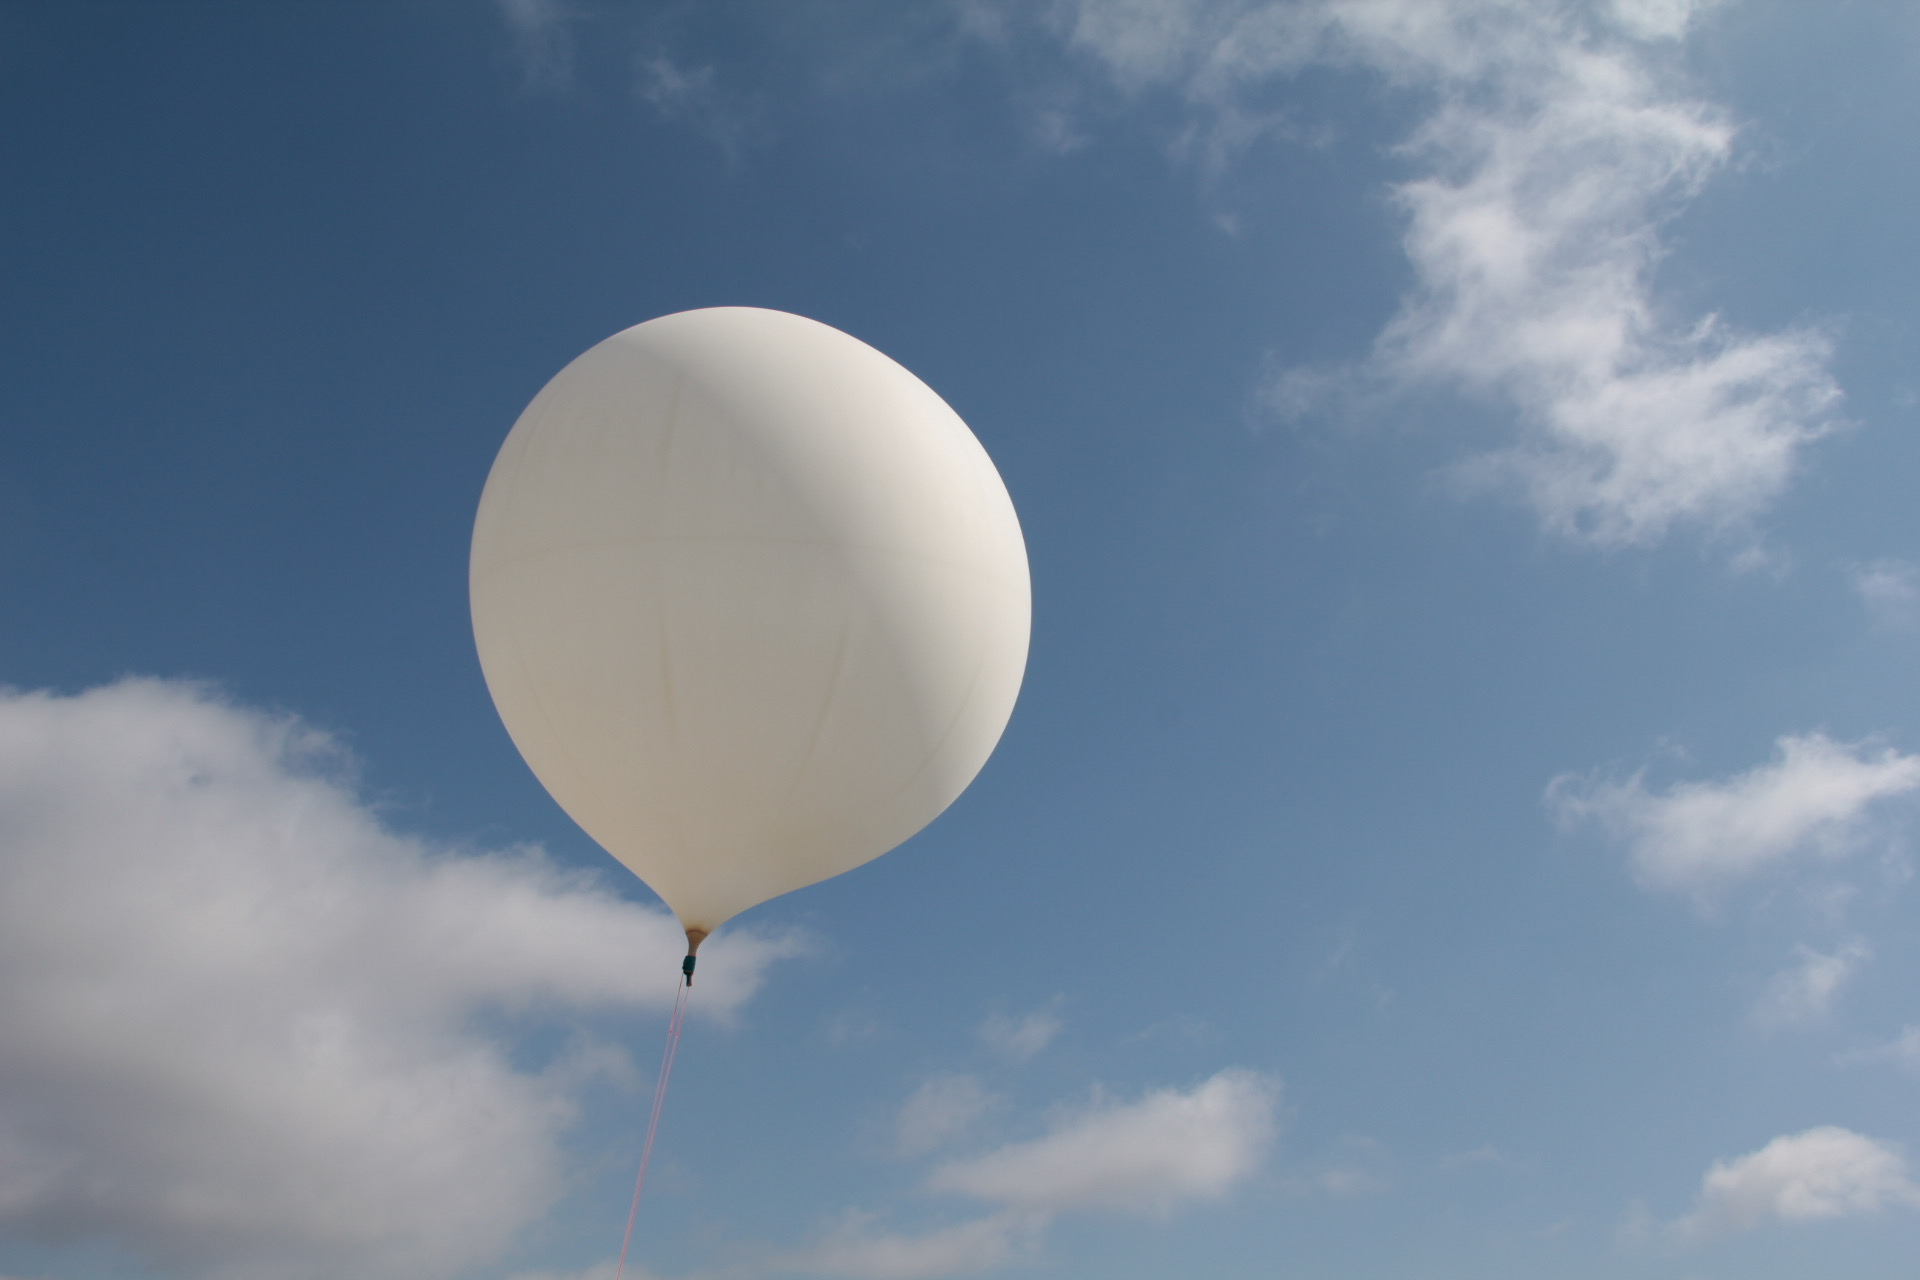 A 71-year-old man tied a gun to a weather balloon to fake his own